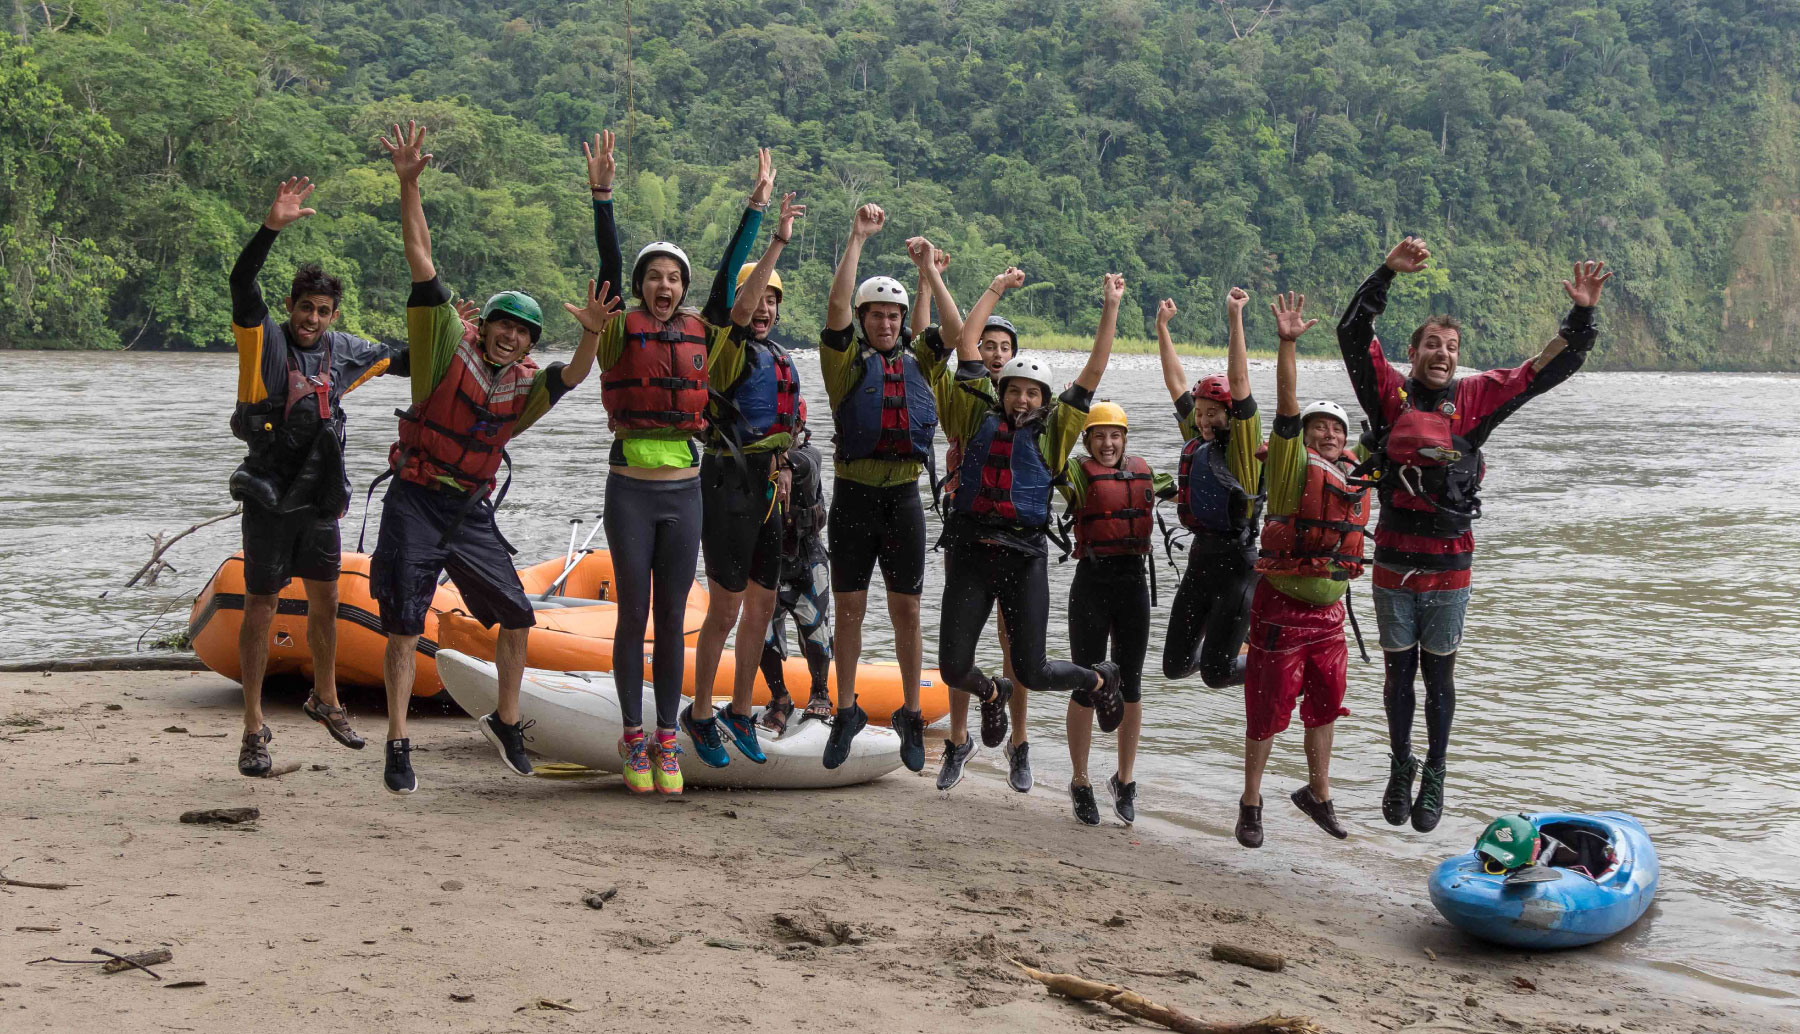 People jumping after a rafting trip in jungle in Southamerica